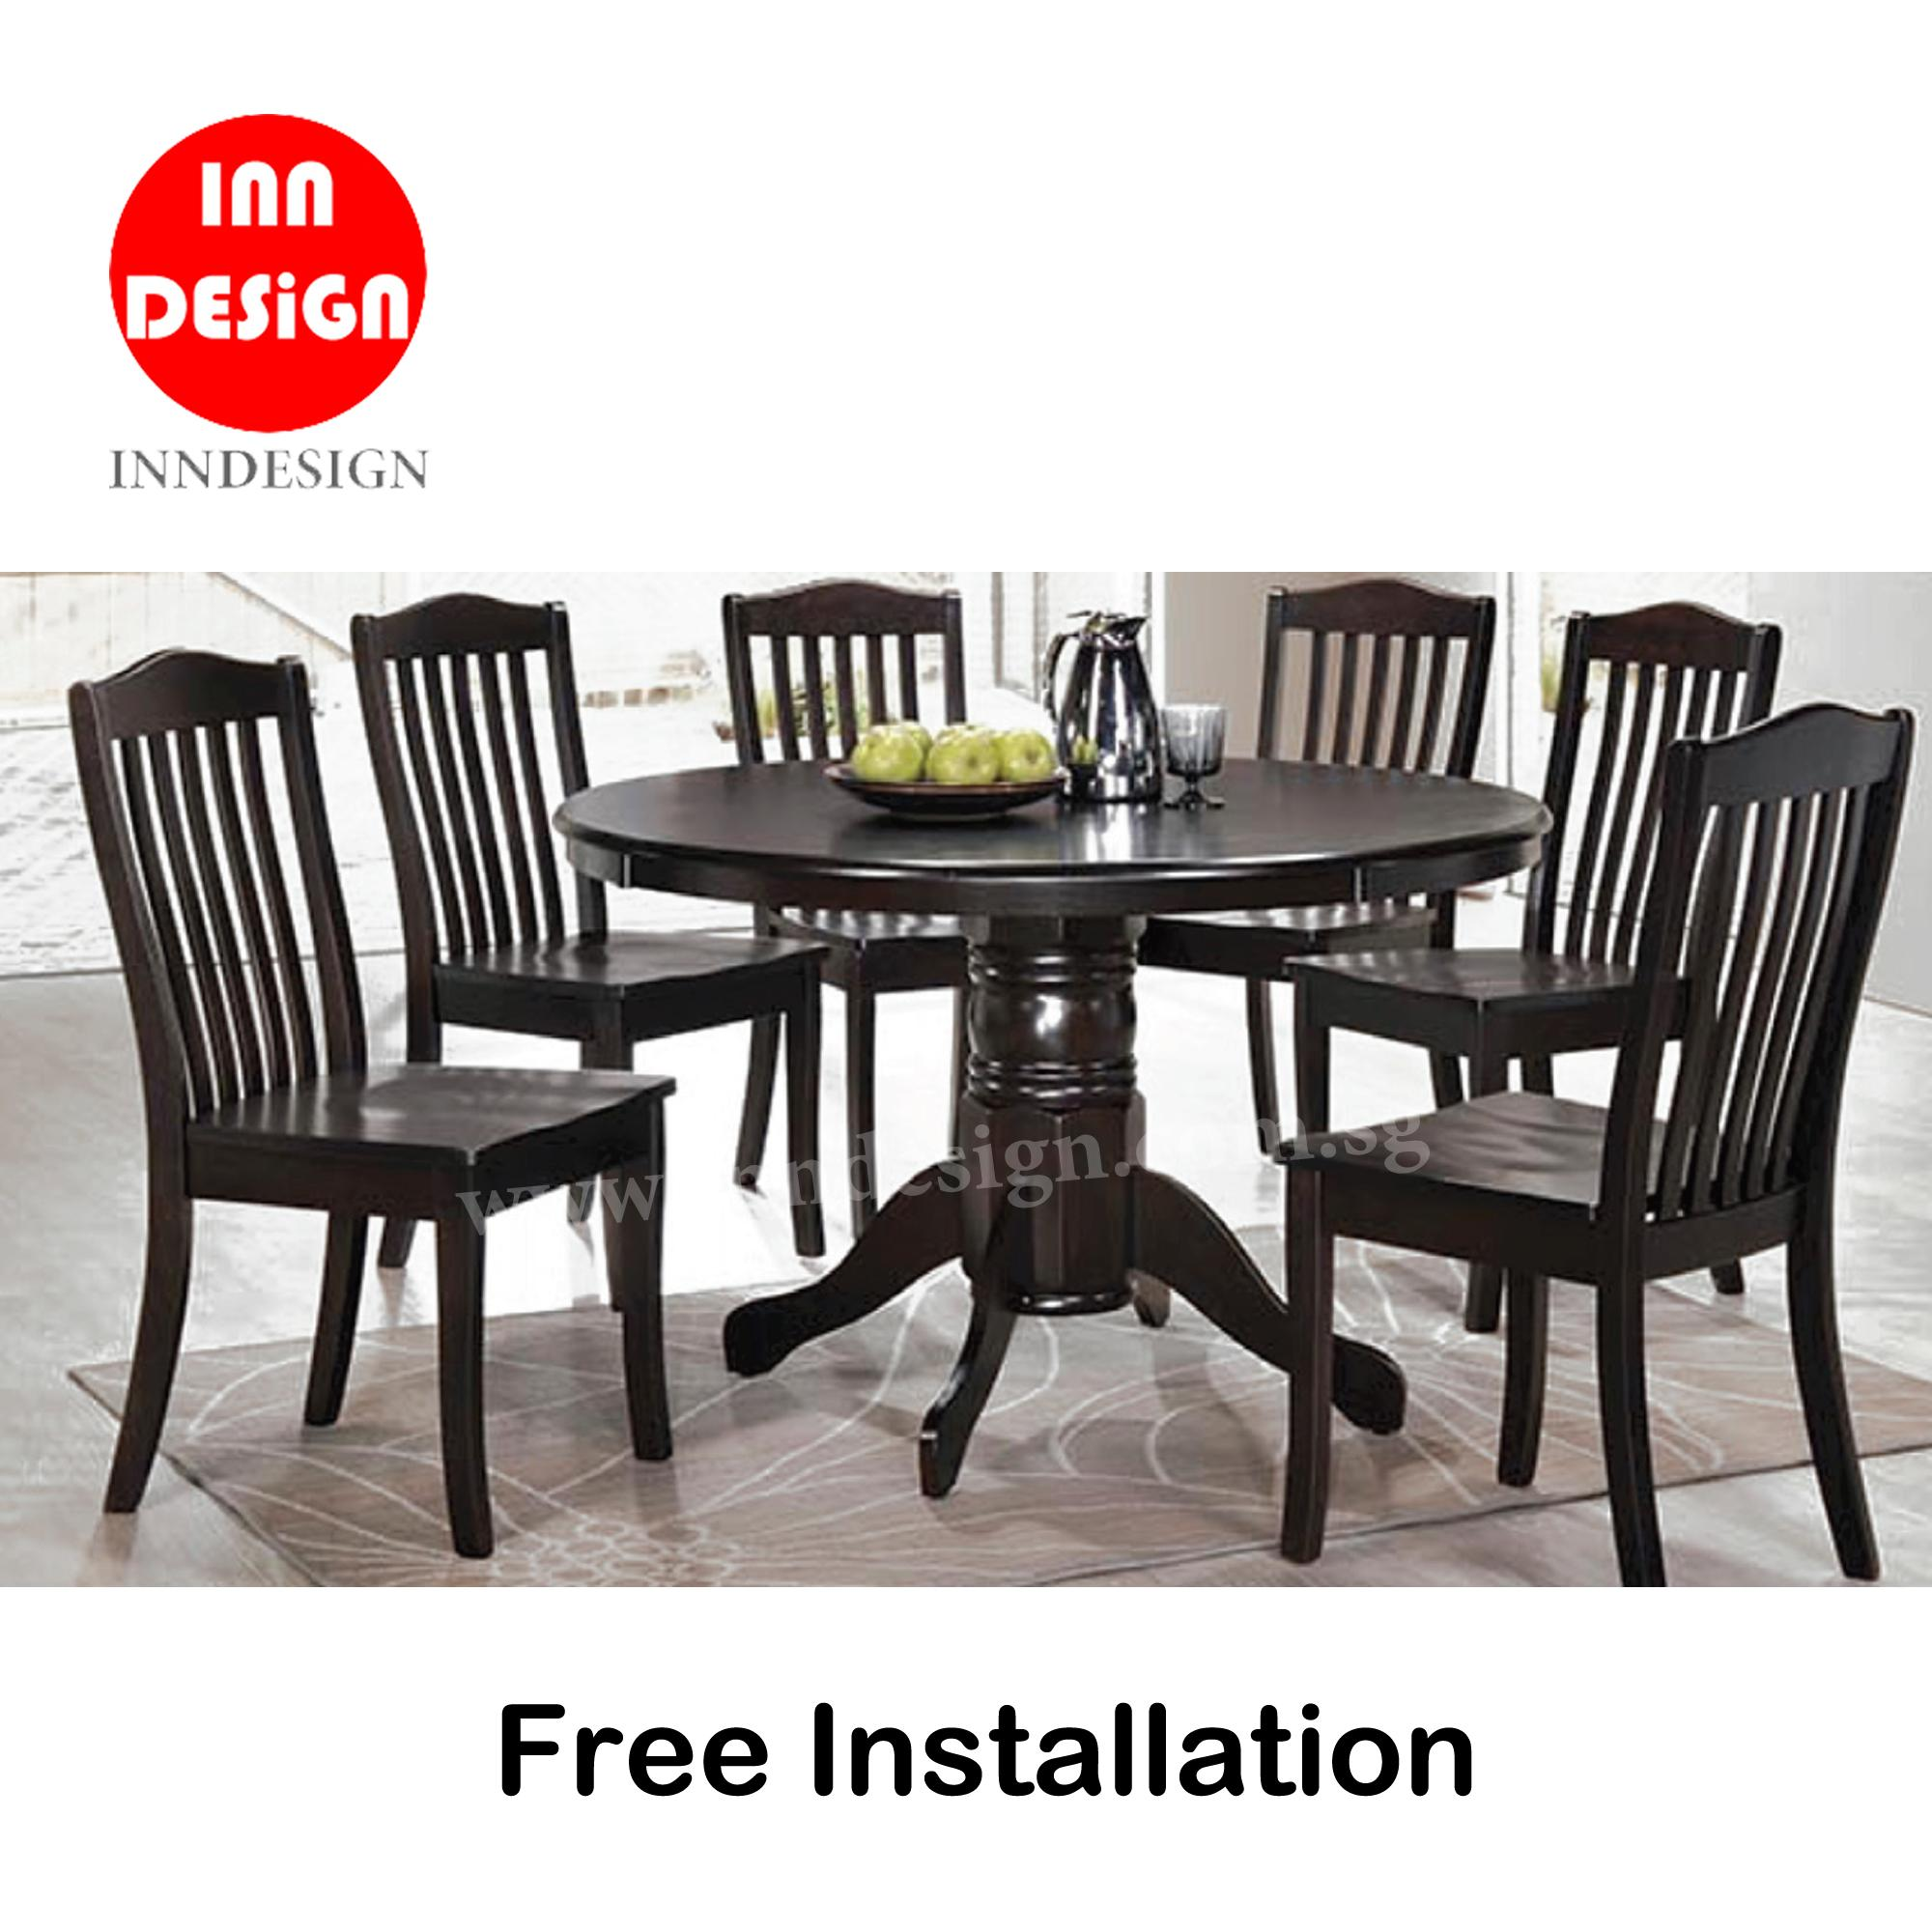 Edian 1+6 Dining Set (Solid Wood) (Free Delivery and Installation)